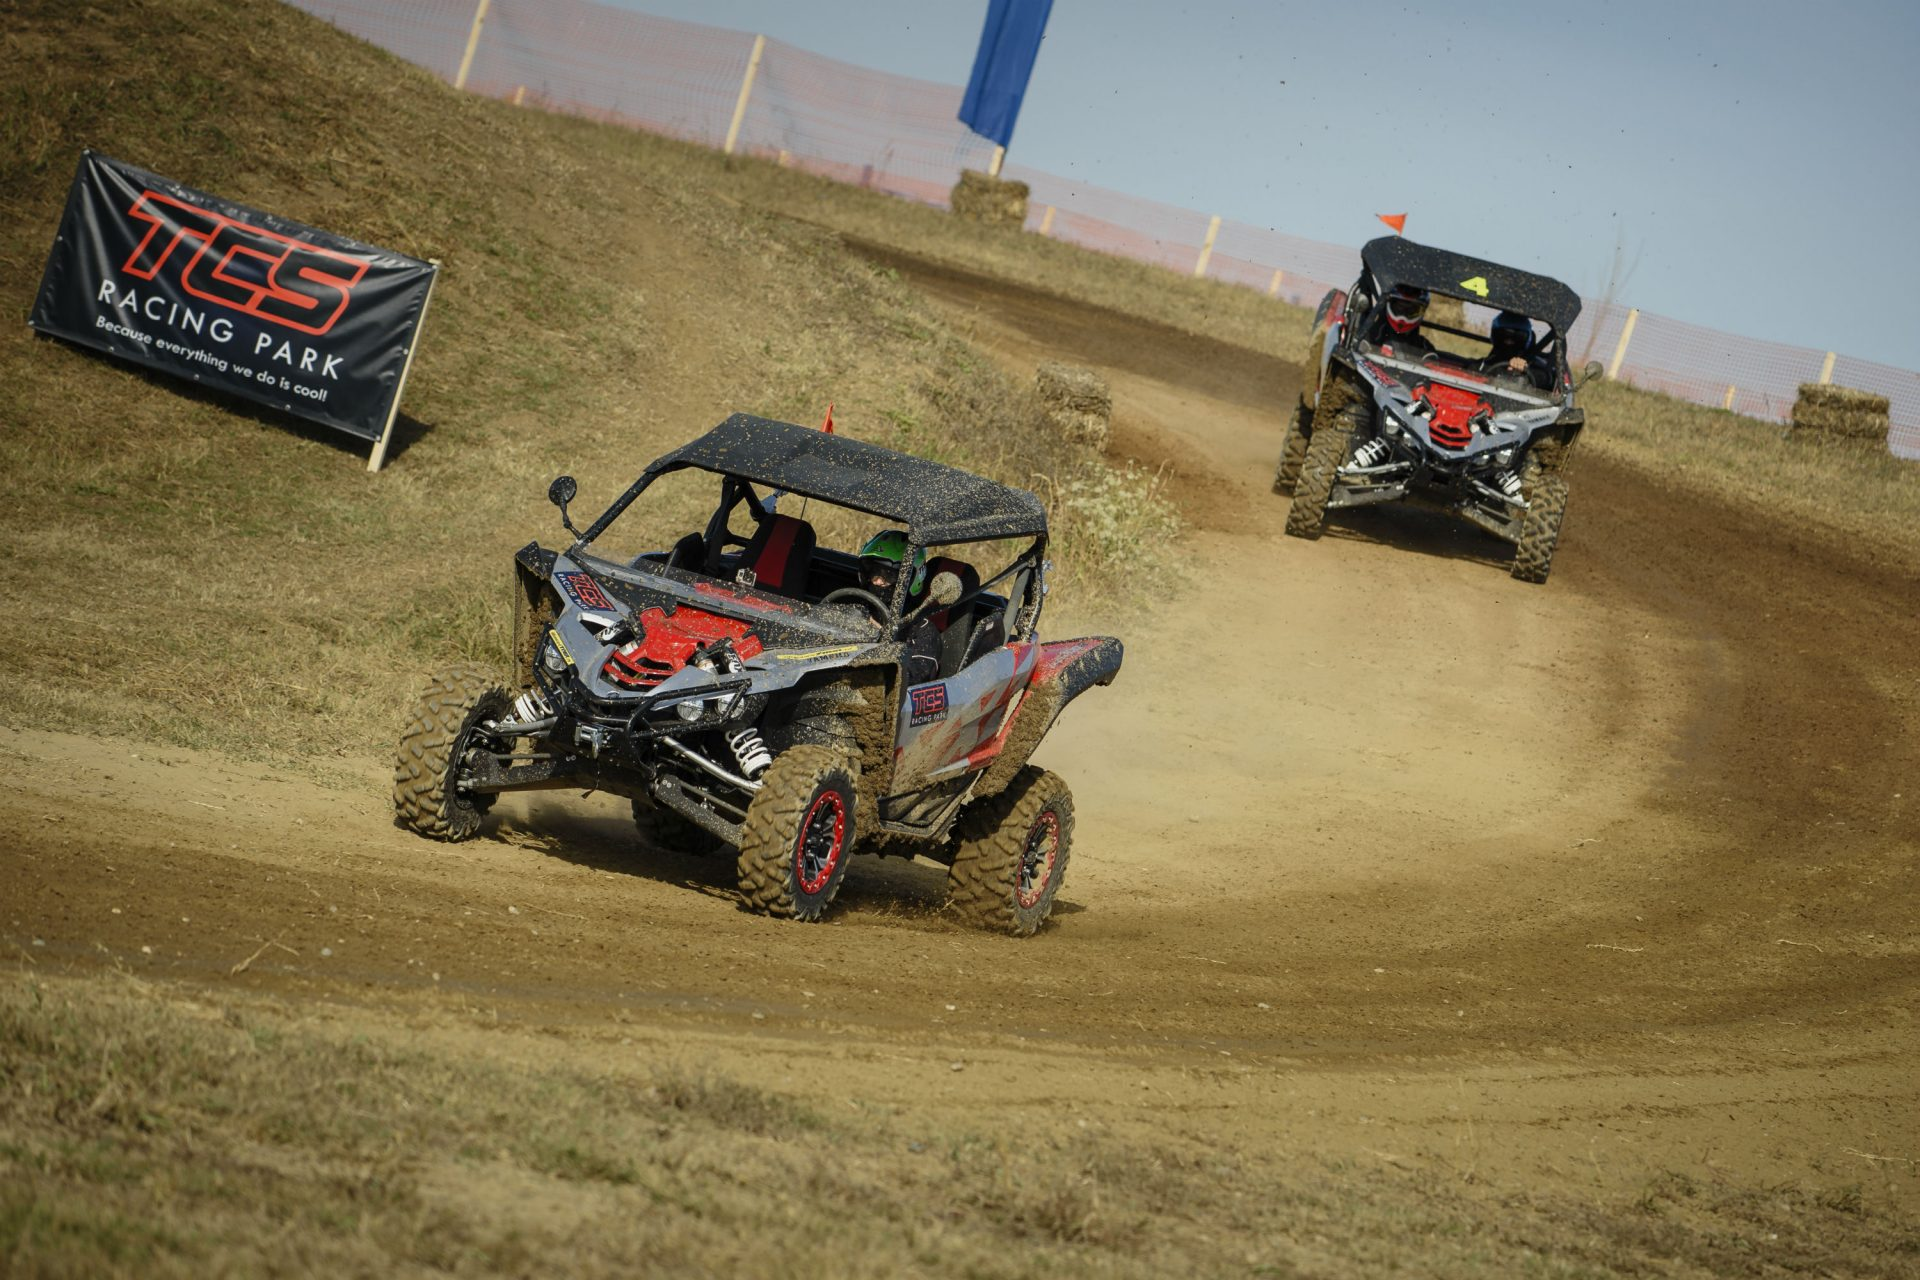 Campionatul National de Rally Cross incepe, in acest weekend, pe circuitul TCS Racing Park